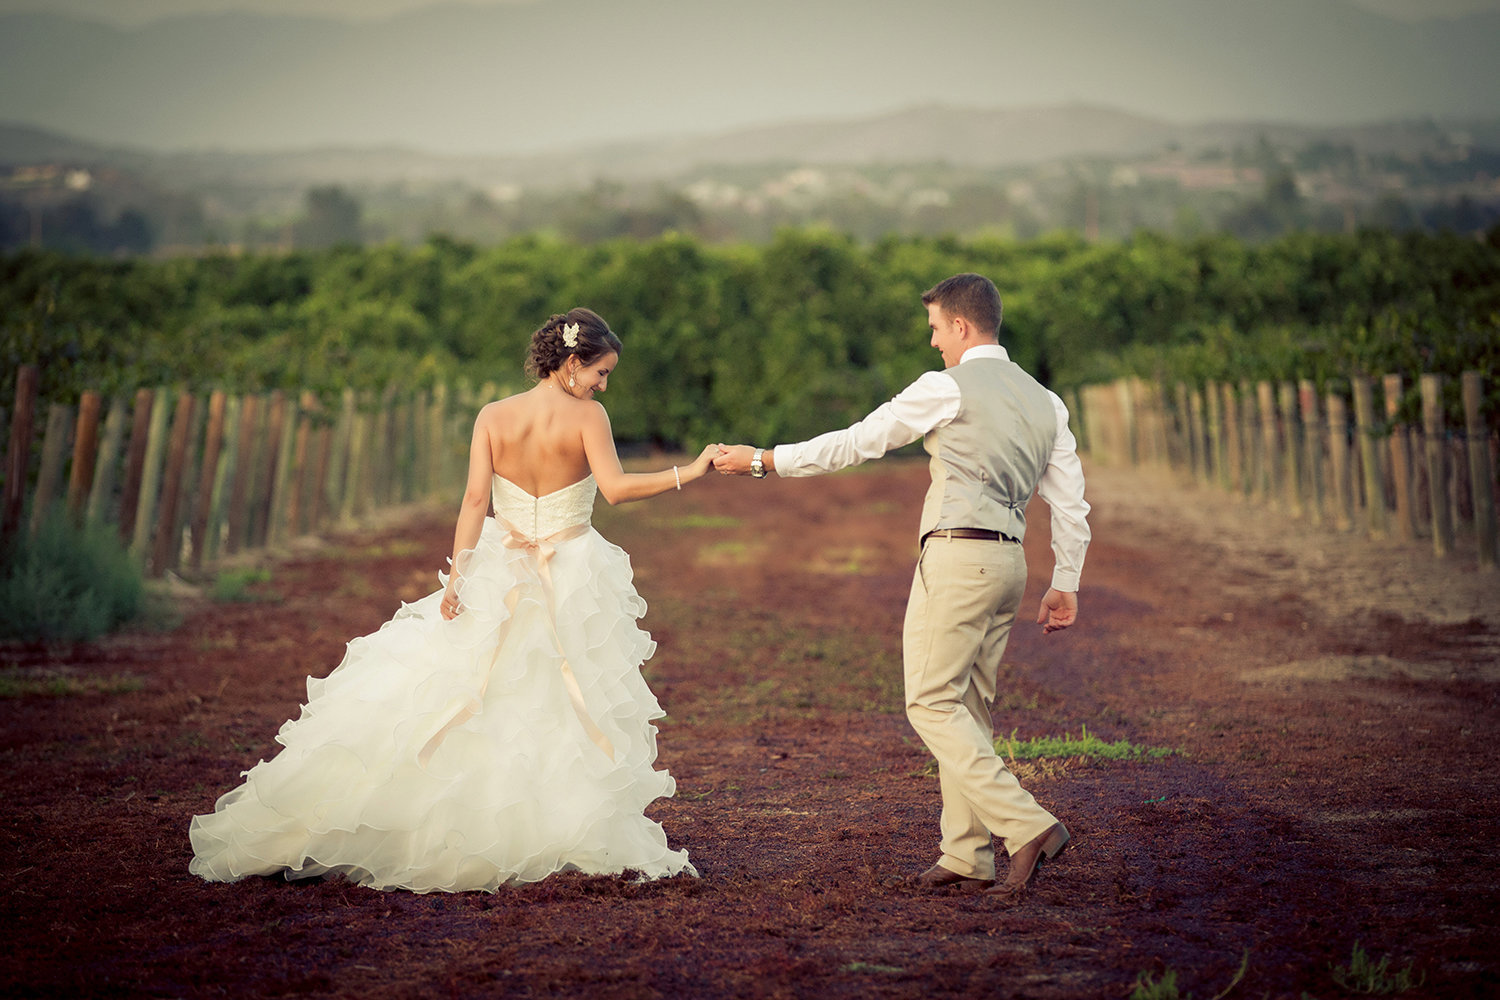 Temecula Winery wedding photos beautiful couple in vineyard